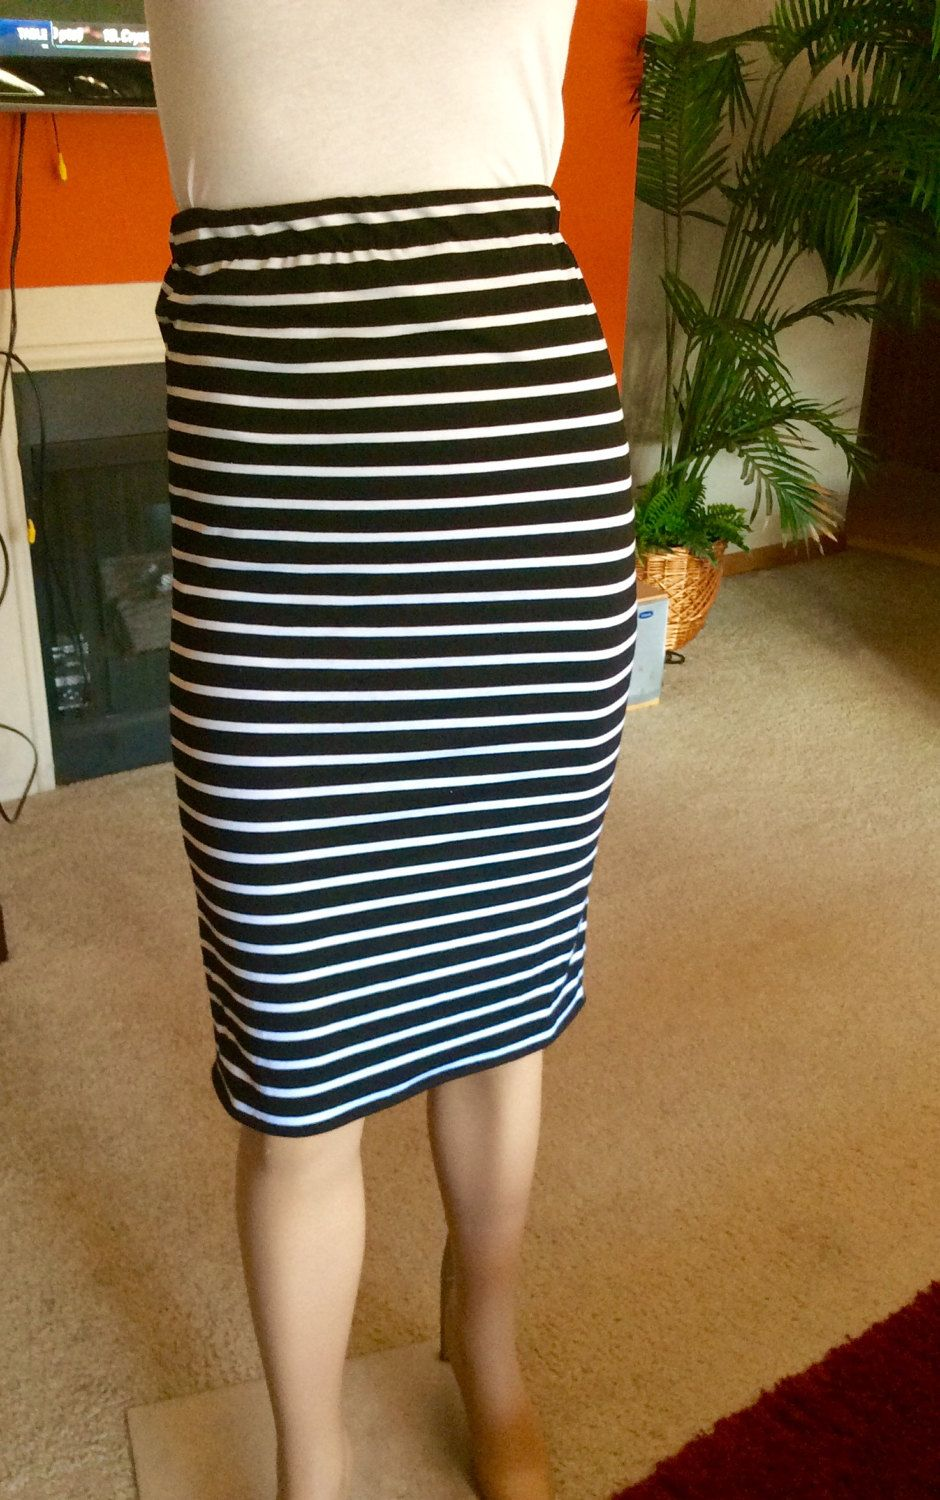 STRIPE FORM FITTING Pencil Skirt. Great for all occasions. Jersey ...